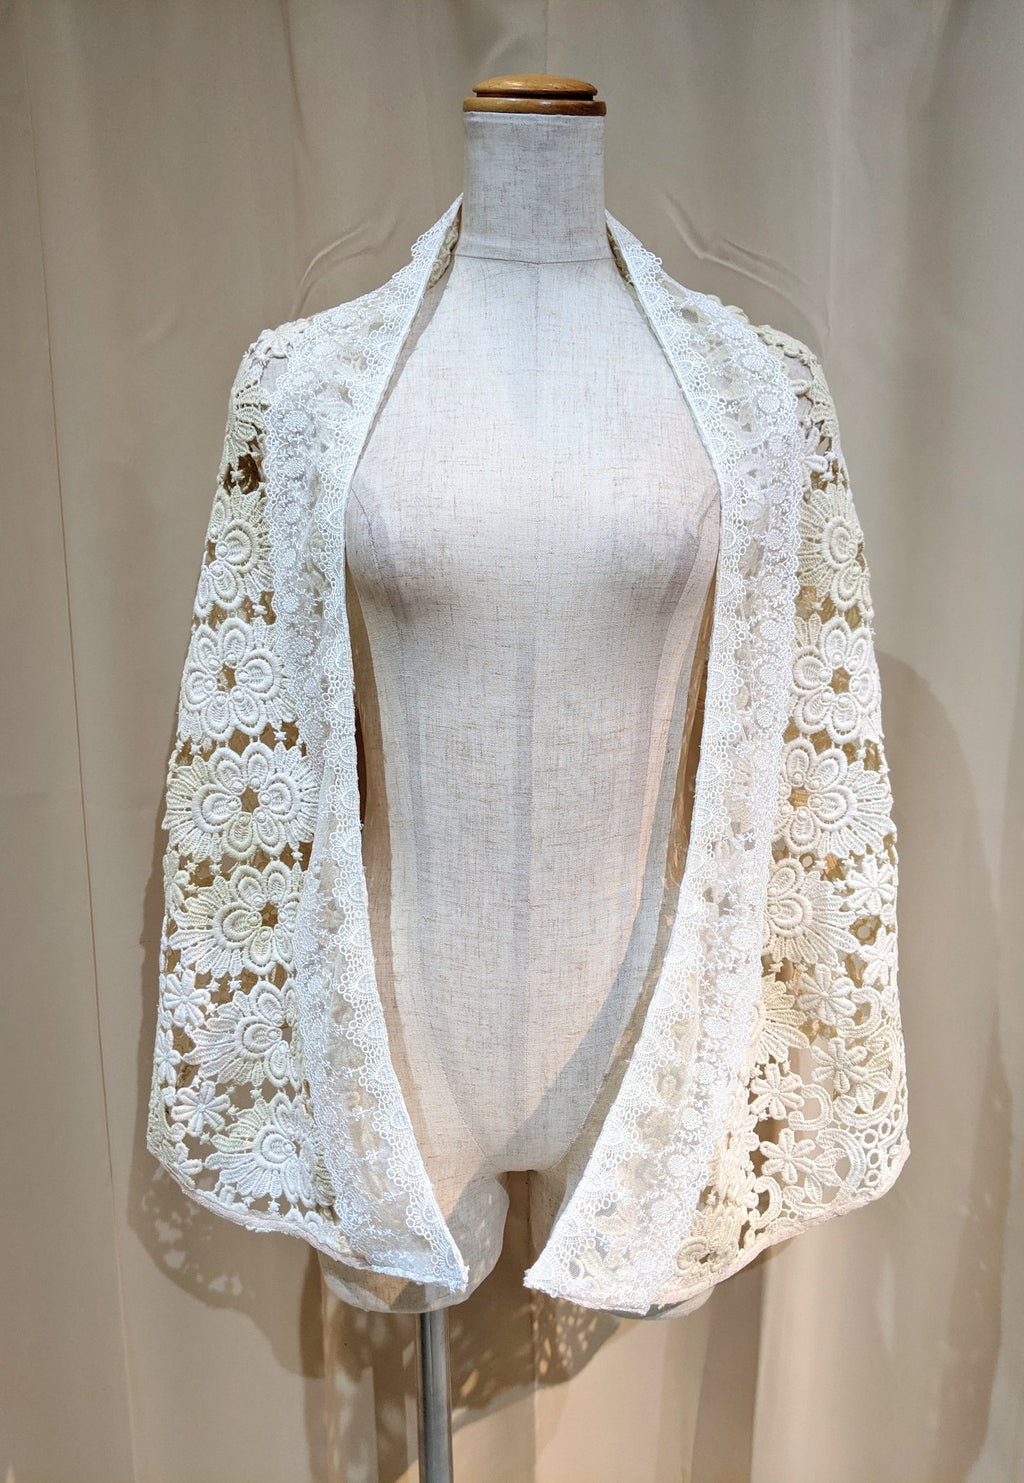 GRAMM Cotton lace shawl